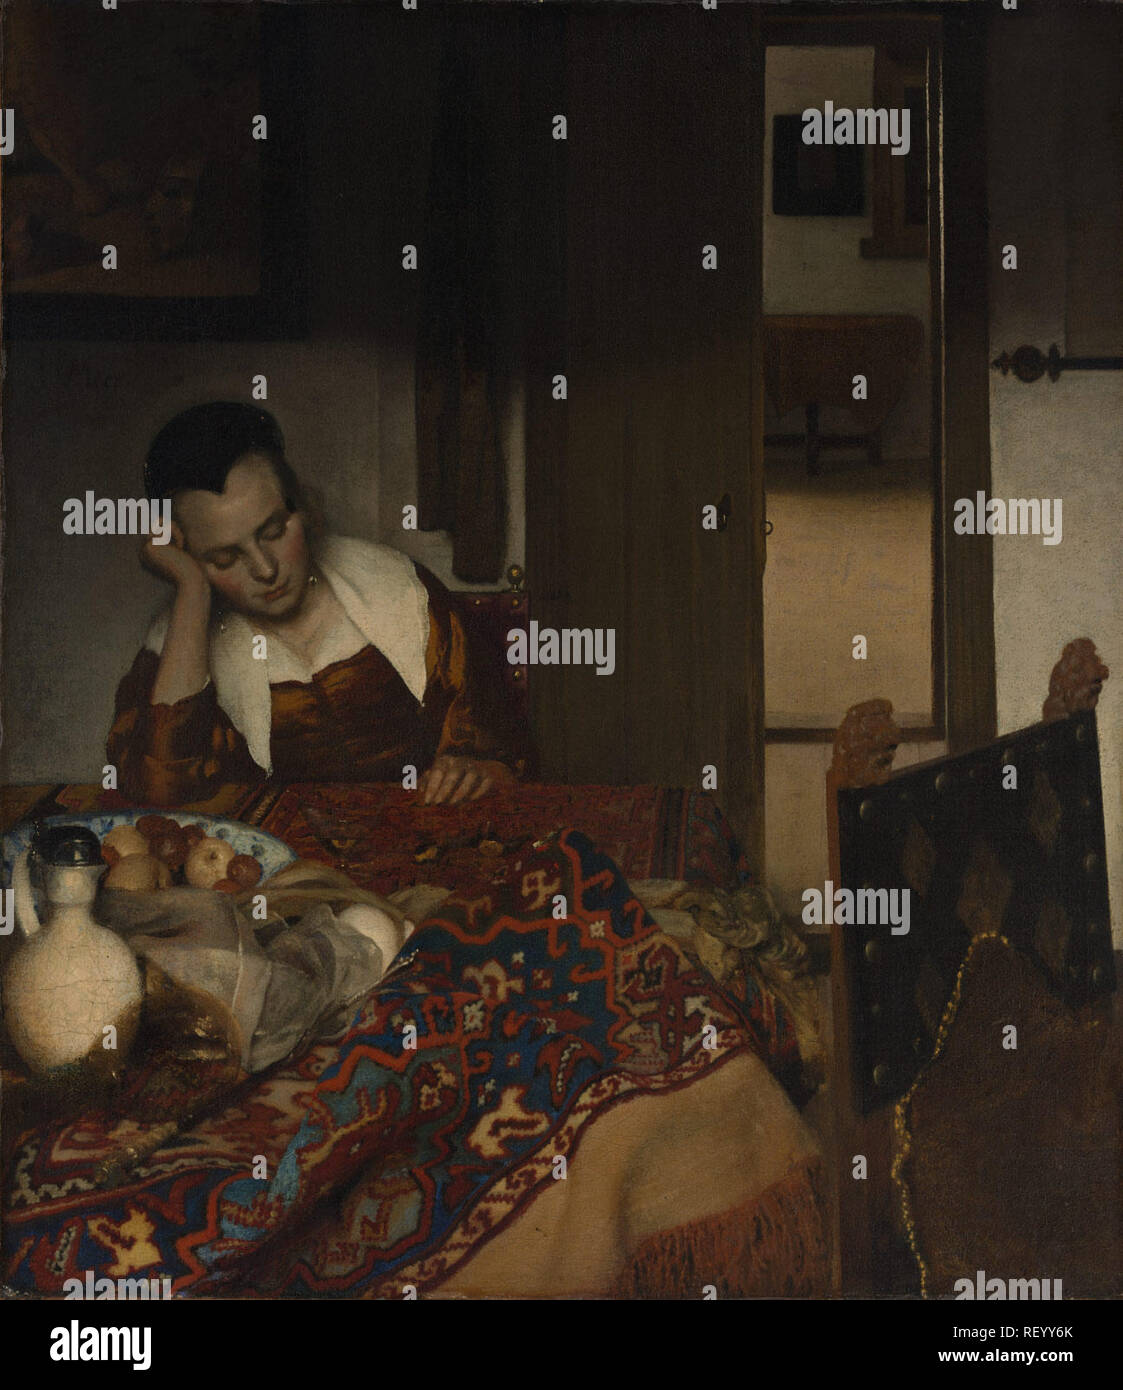 Working Title/Artist: A Maid Asleep Department: European Paintings Culture/Period/Location:  HB/TOA Date Code:  Working Date: 1656-57 photography by mma, DP145904.tif touched by film and media (jnc) 8_24_09 - Stock Image